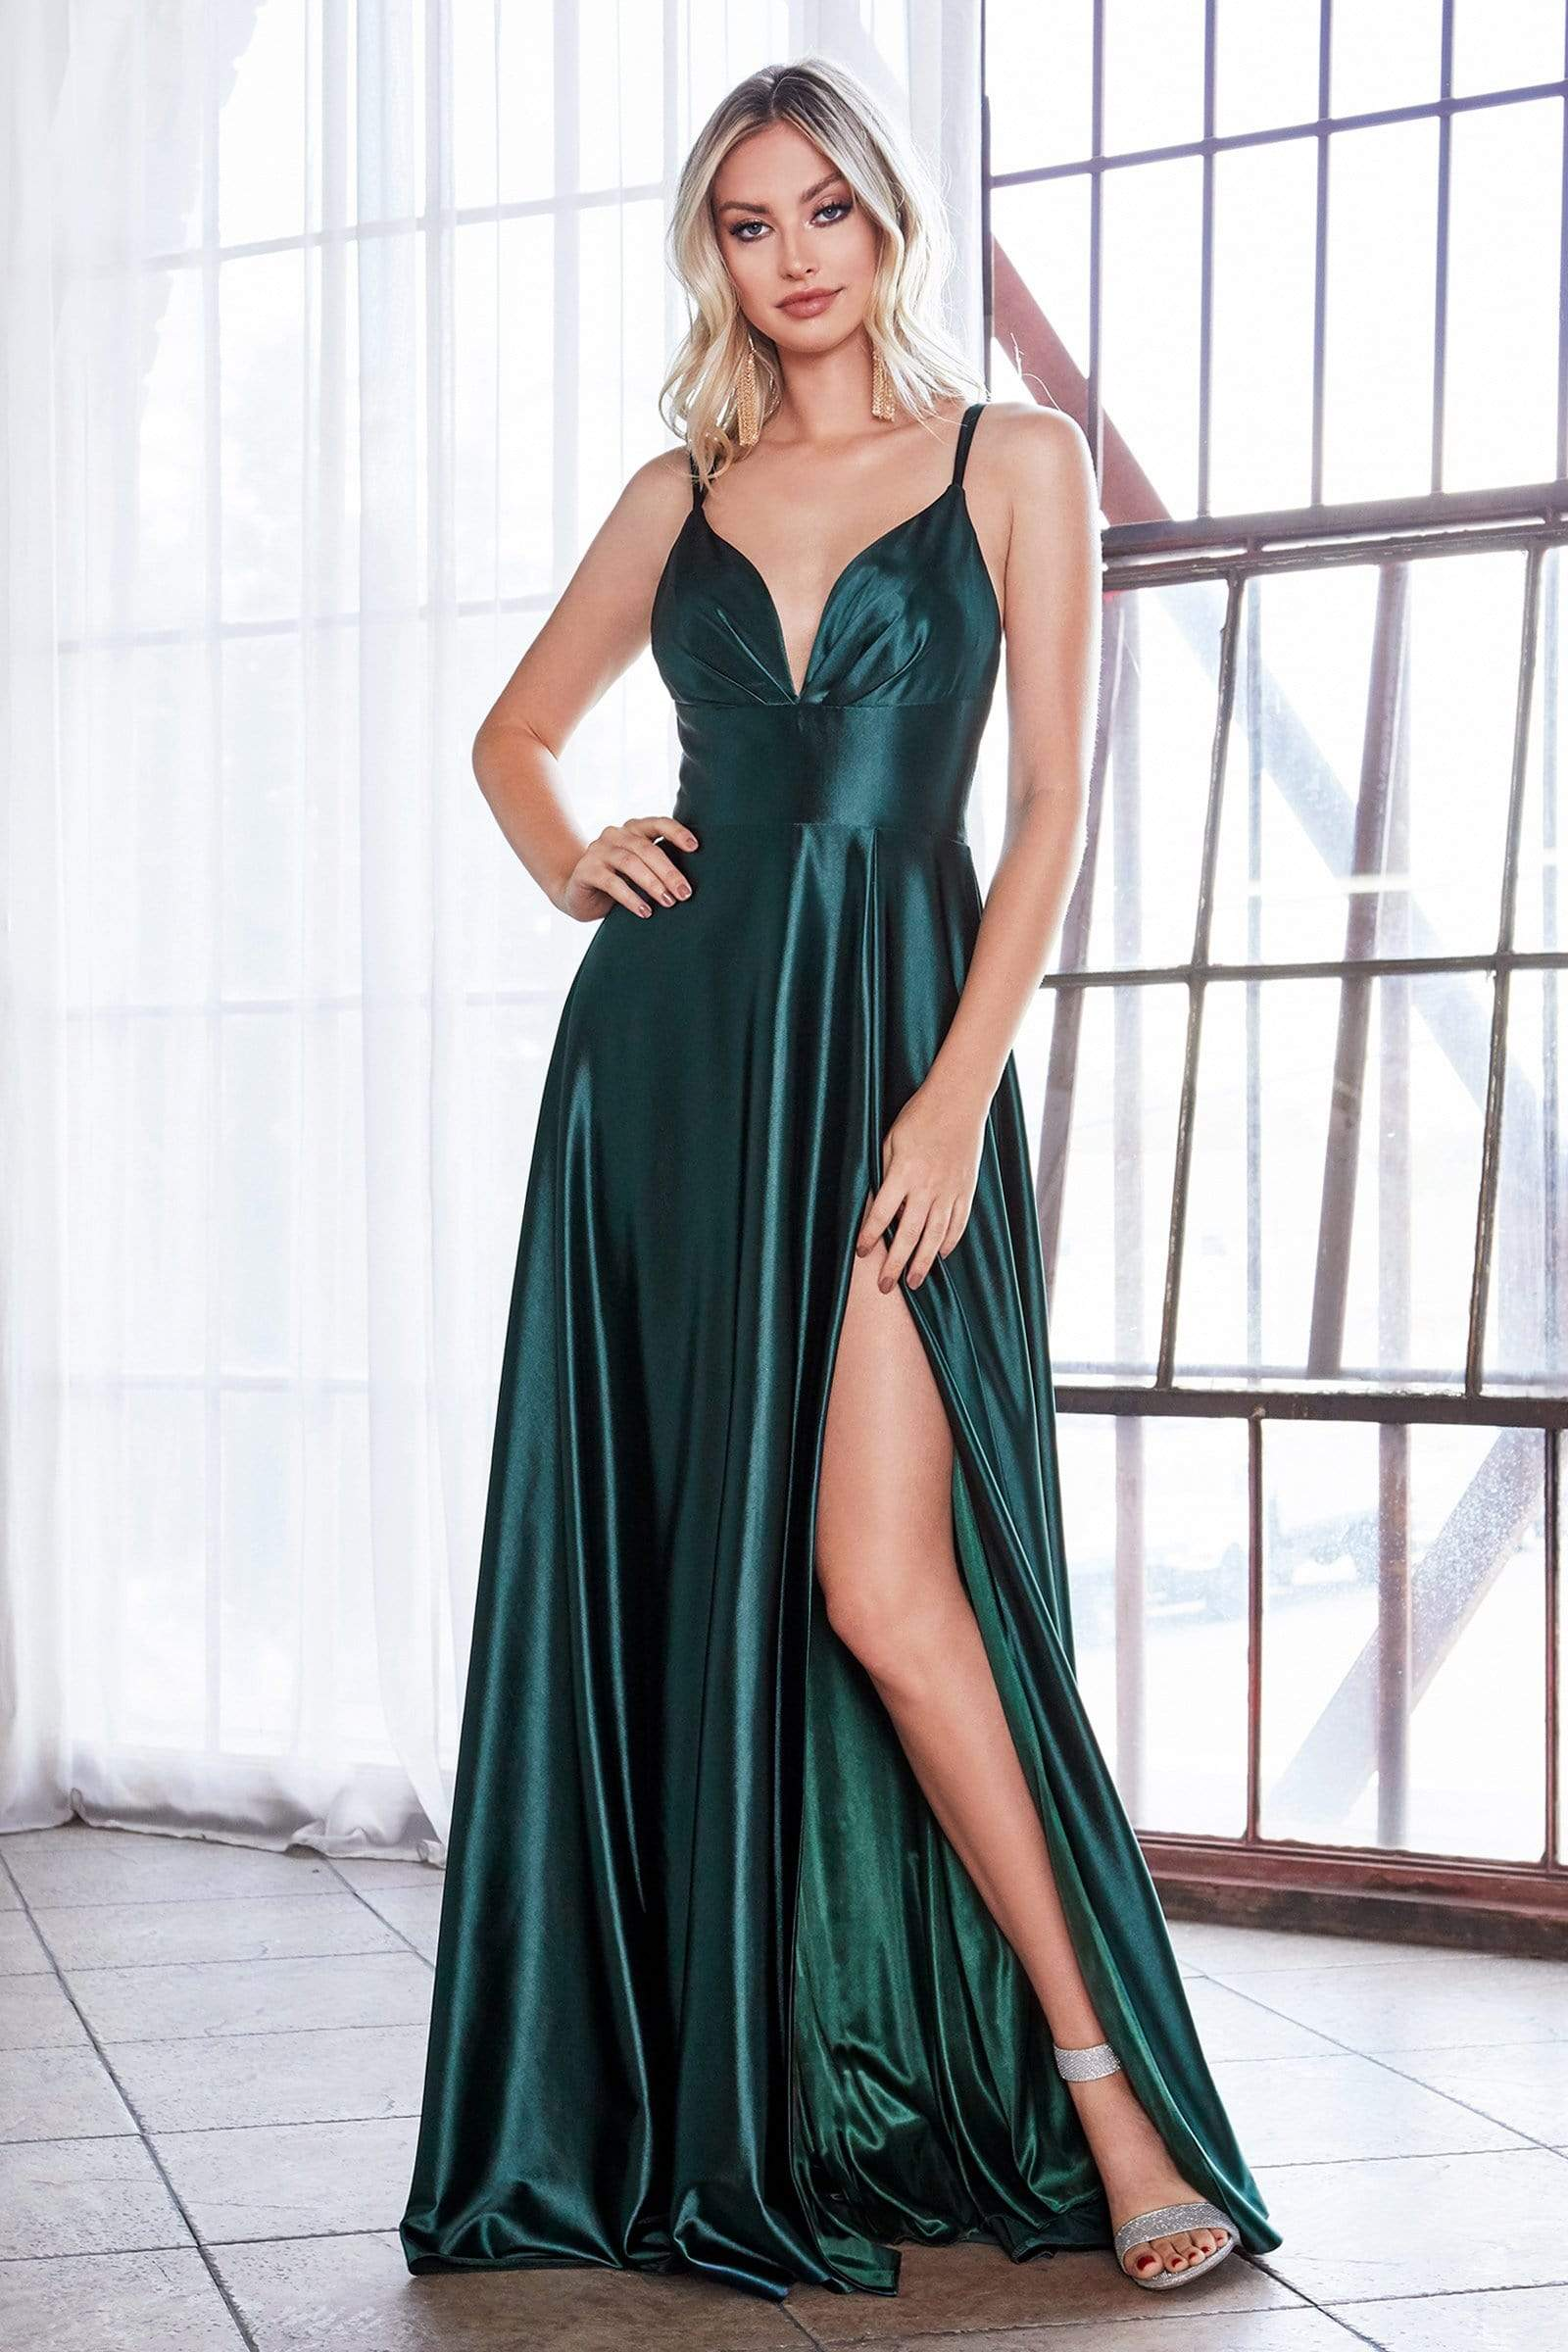 Cinderella Divine - CD903 Deep V-neck Satin A-line Gown Prom Dresses 2 / Deep Emerald